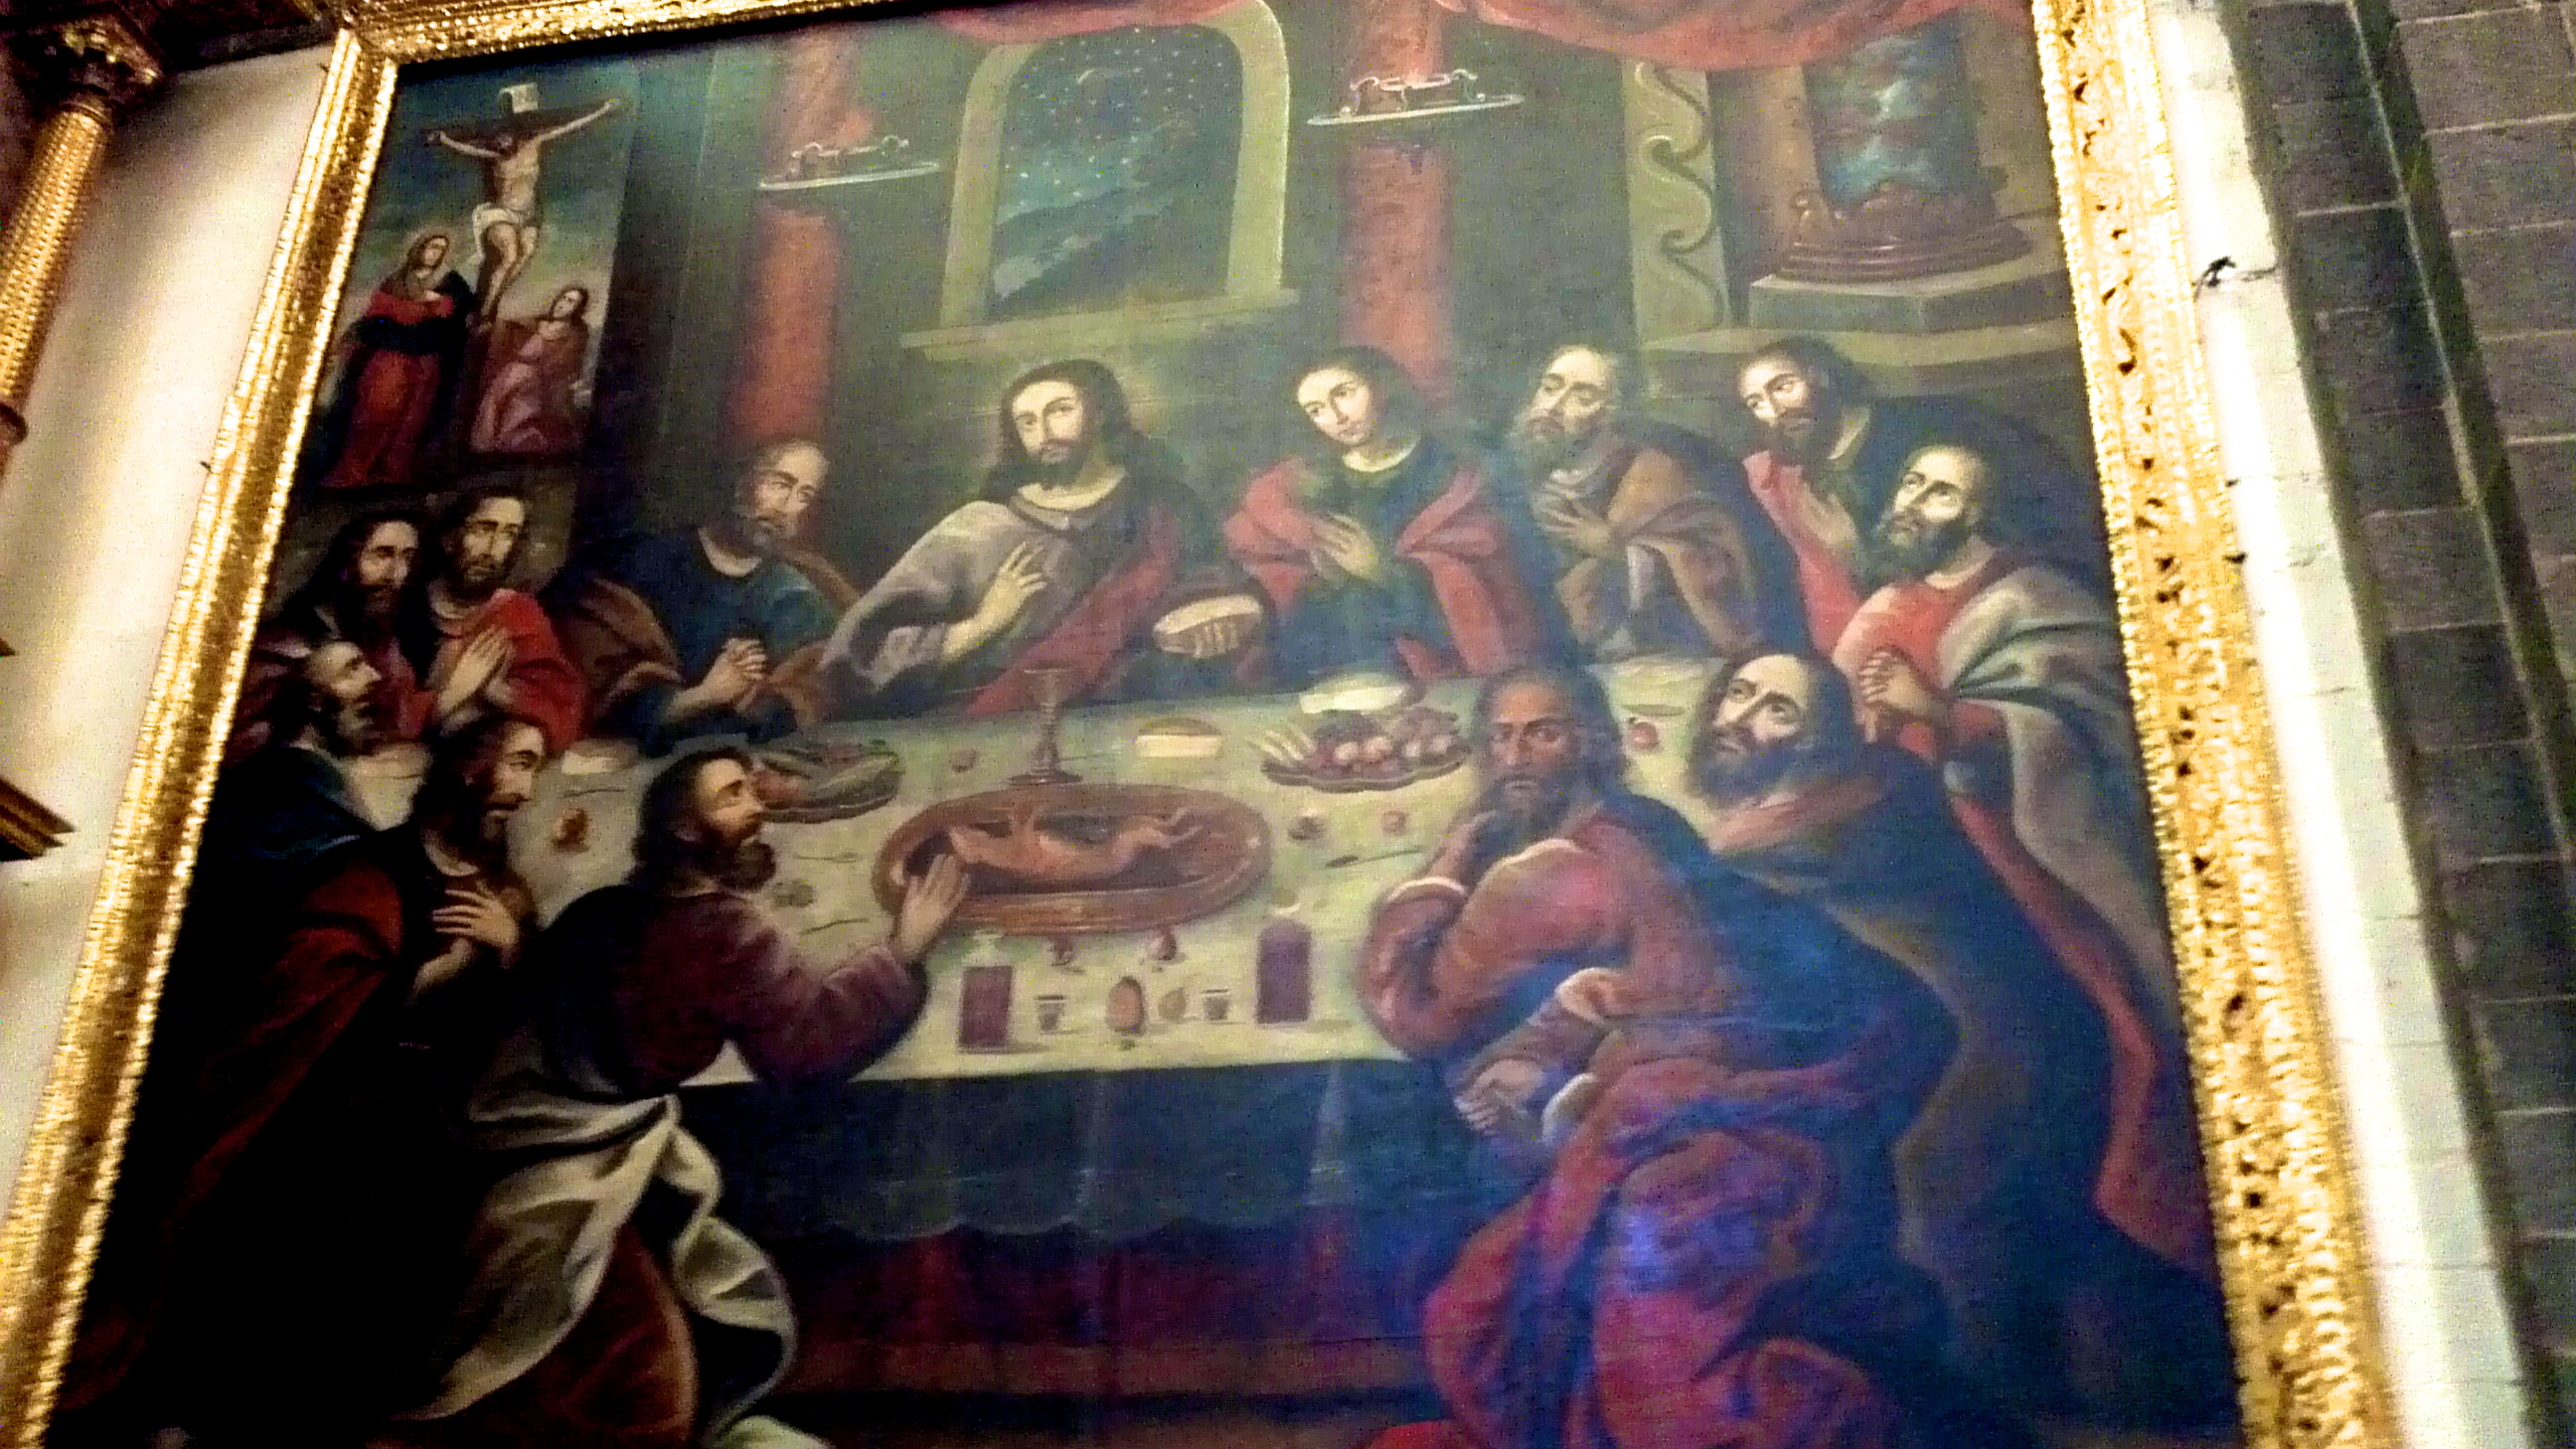 Jesus eating cuy at his last supper in Cusco